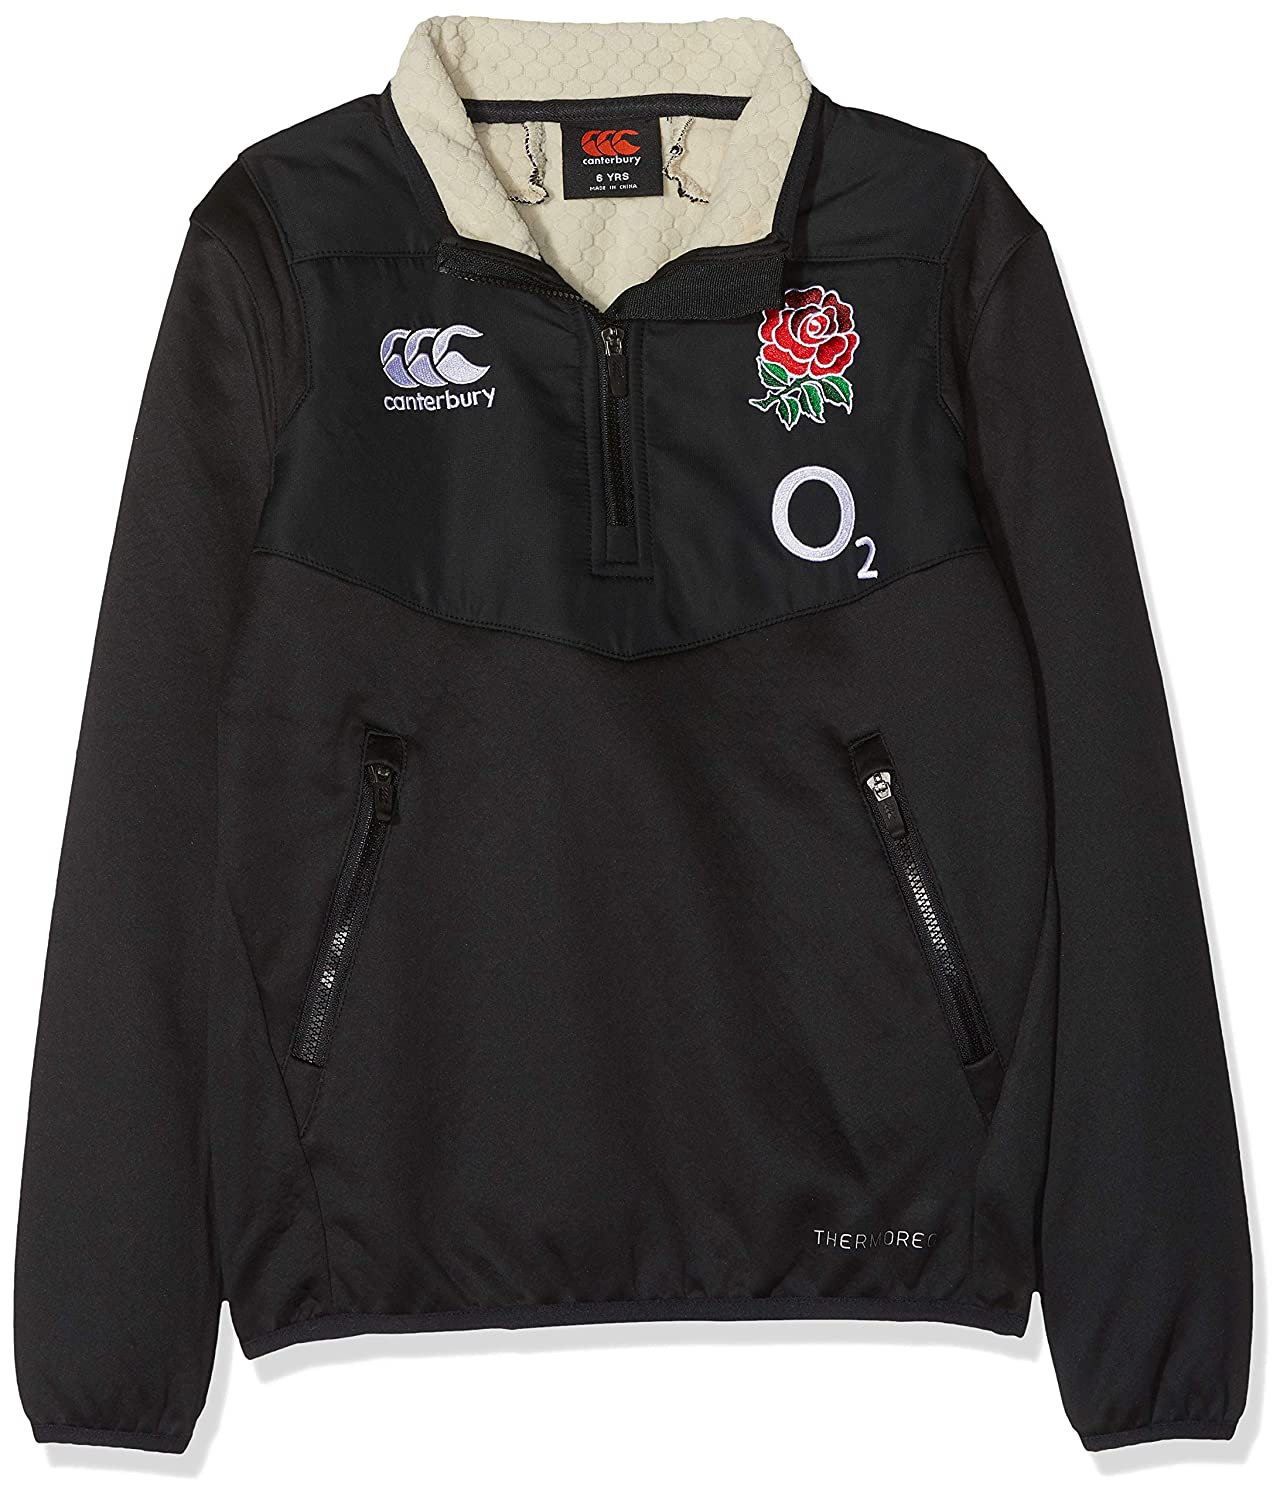 England Rugby Vaposhield Full Zip Hoodie Anthracite Junior Kids Canterbury Clothes, Shoes & Accessories Boys' Clothing (2-16 Years)